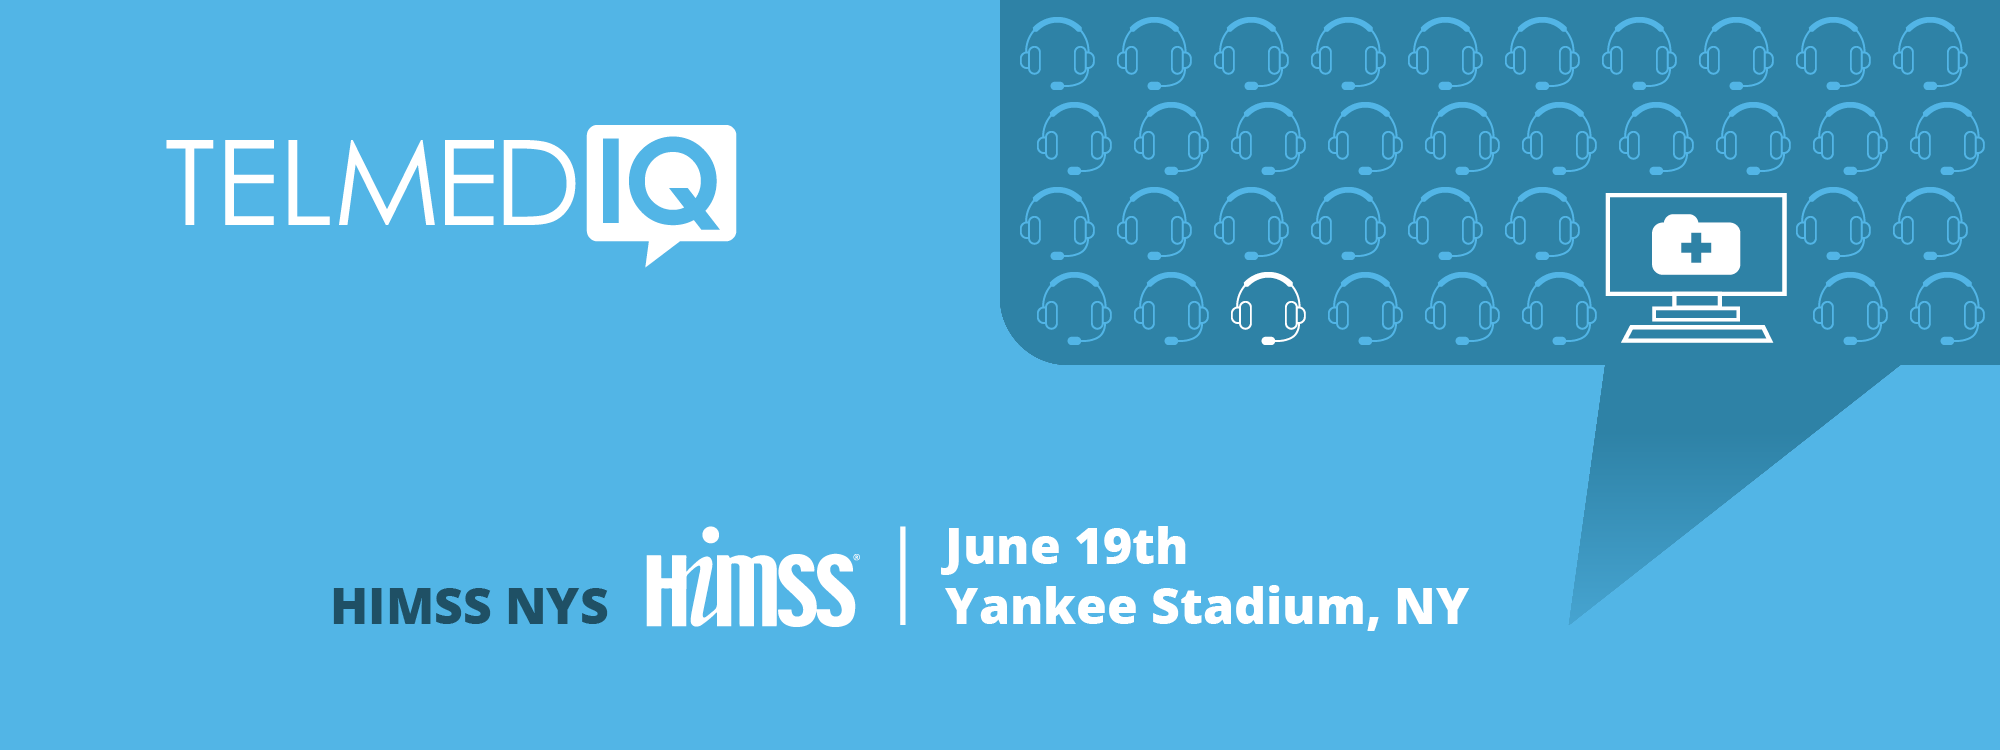 Event: Telmediq at Mini-HIMSS NYC